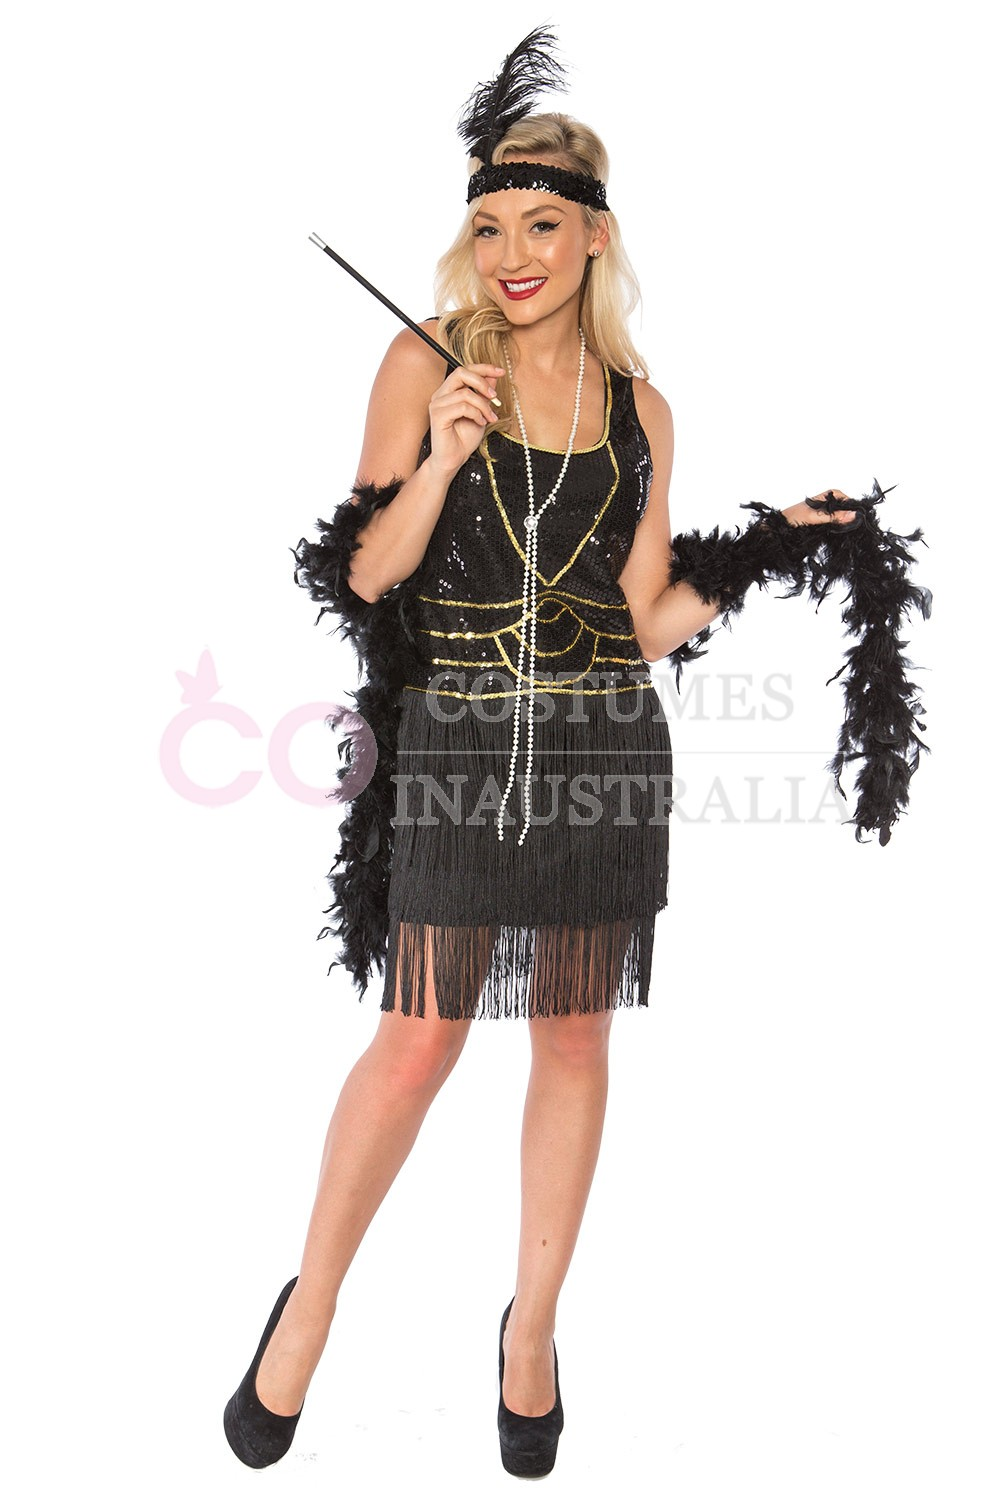 1920s flapper costumes lh191_3